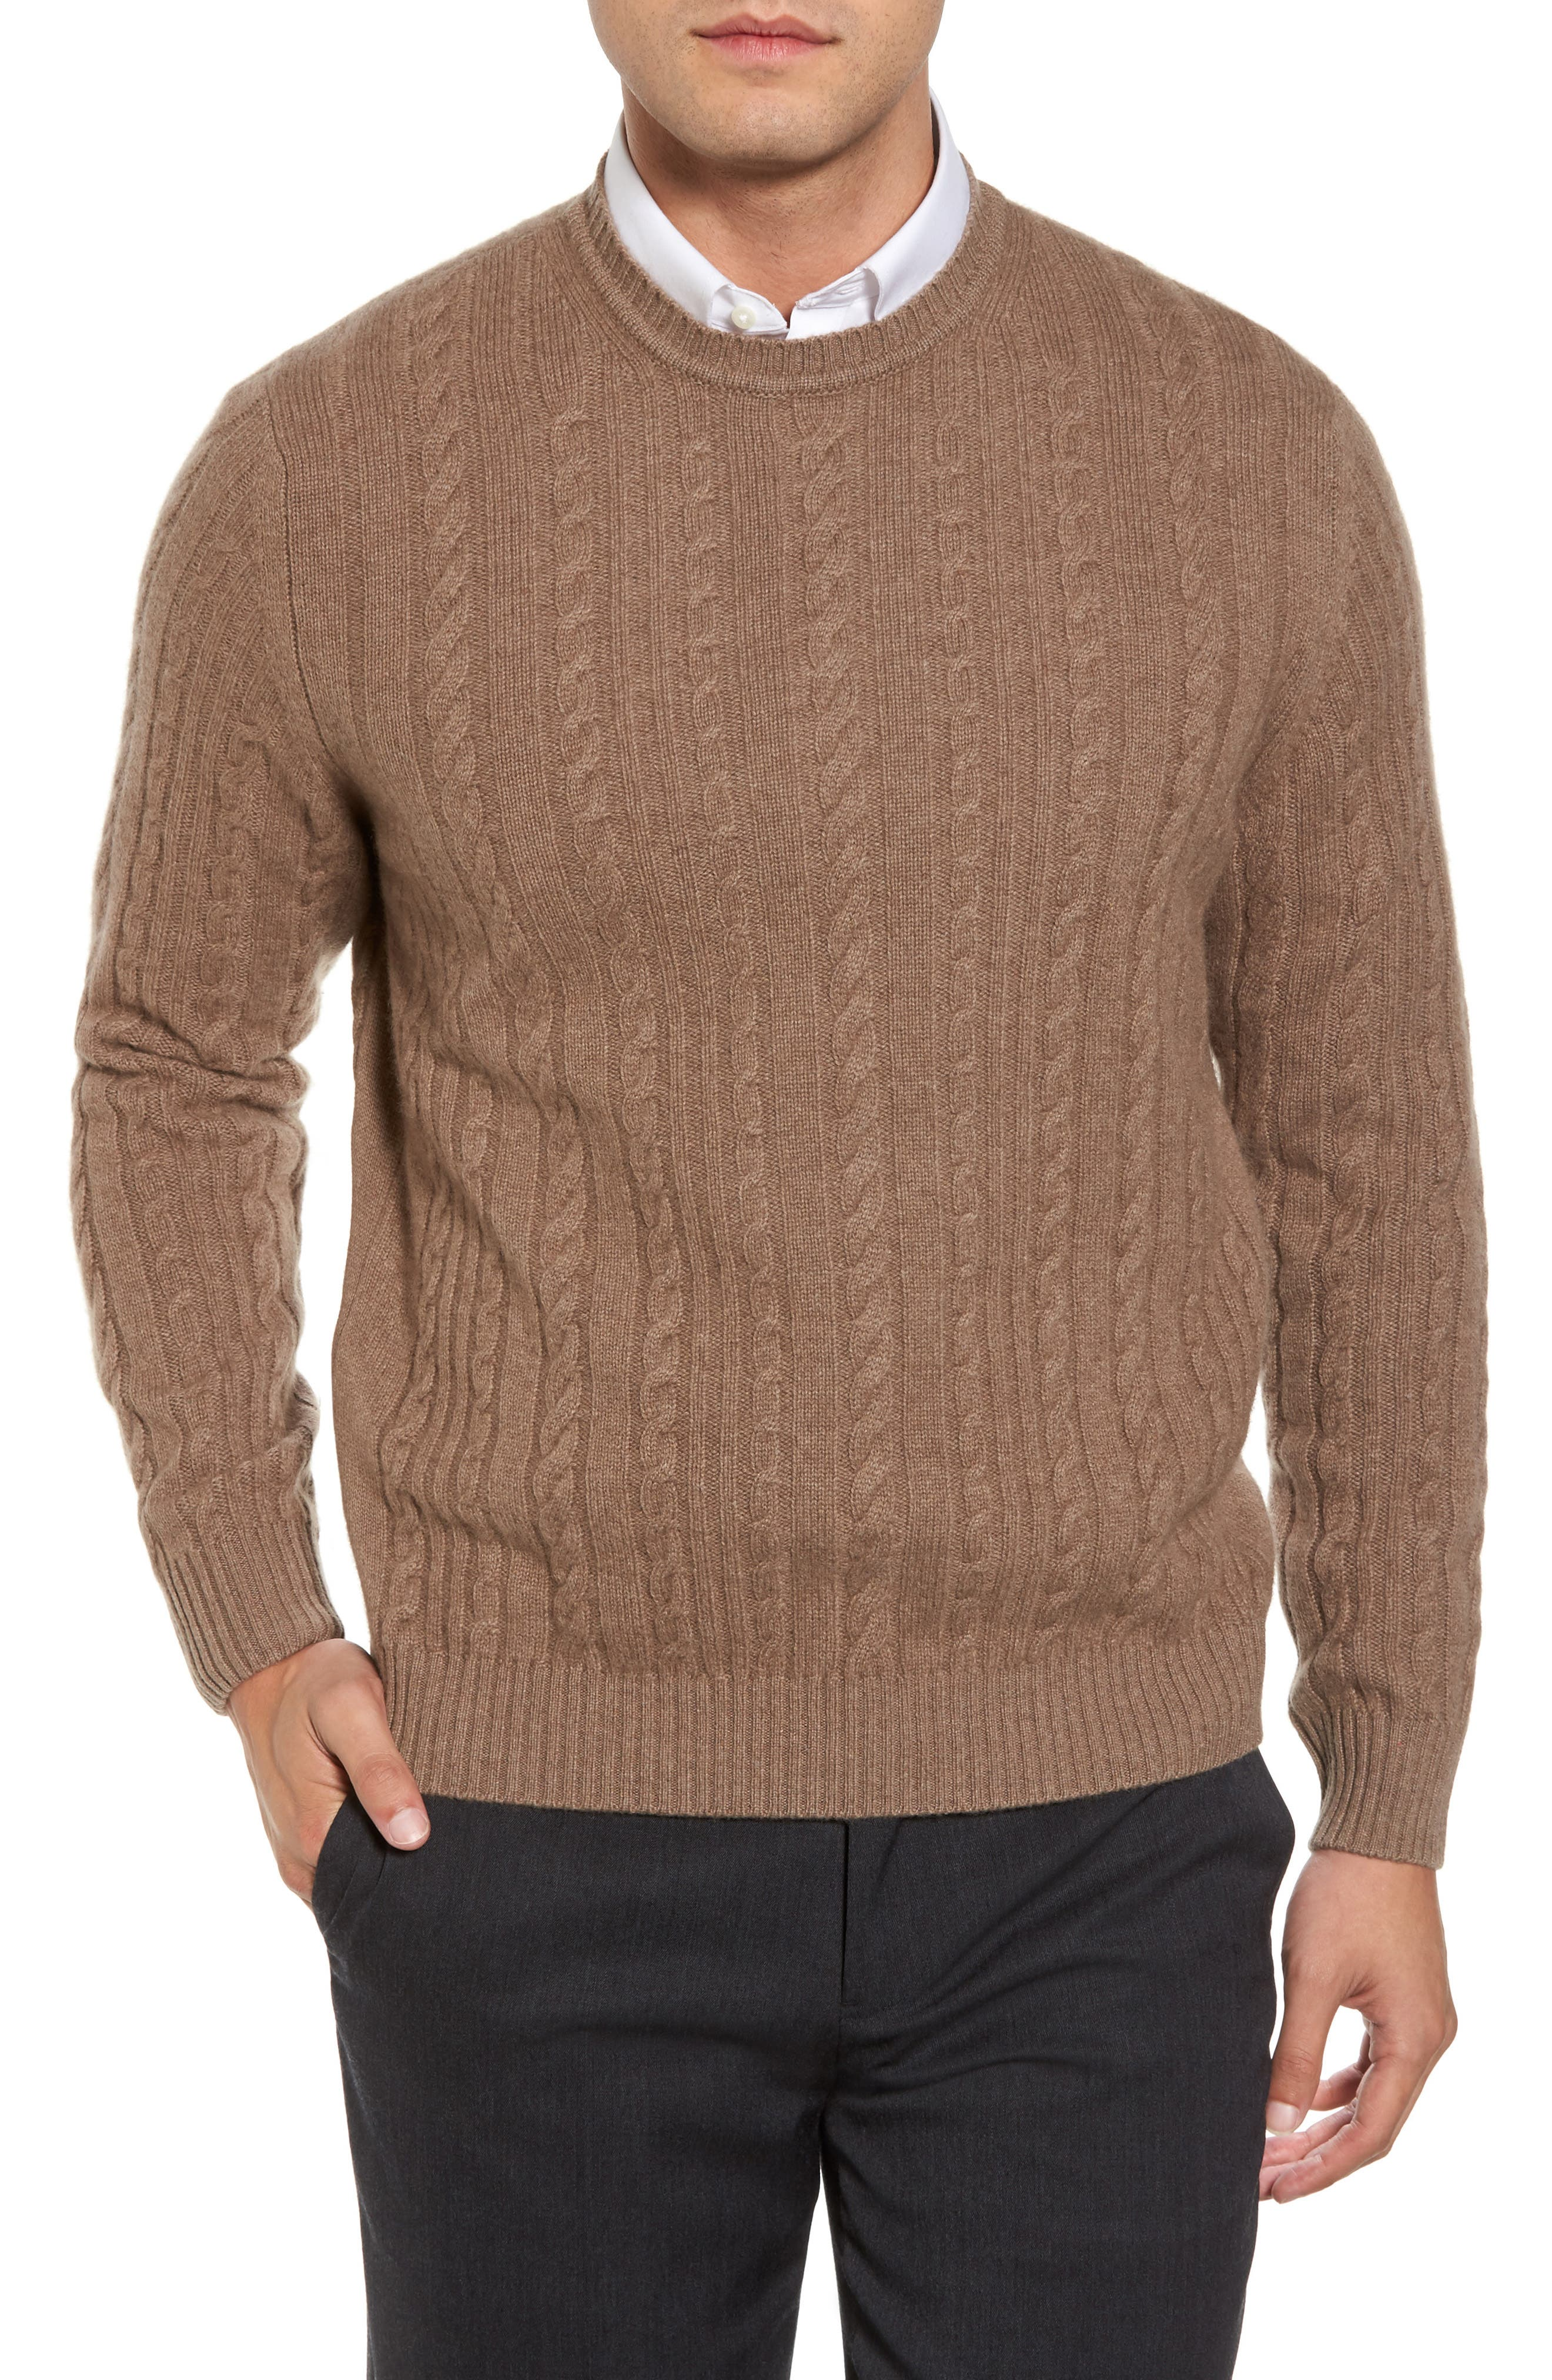 Main Image - David Donahue Cable Knit Cashmere Sweater